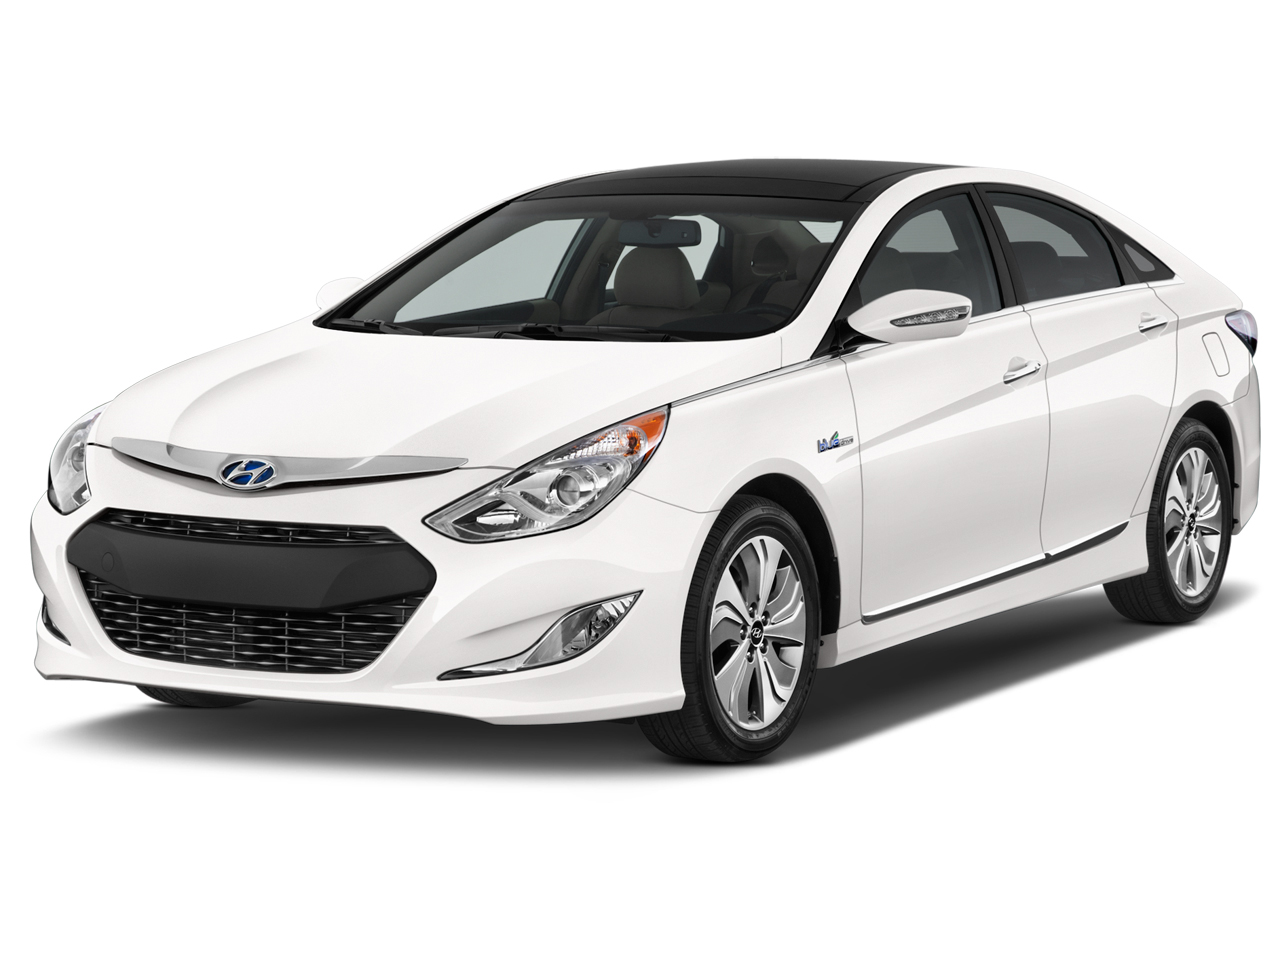 2016 hyundai sonata hybrid reviews test drives green car reports. Black Bedroom Furniture Sets. Home Design Ideas